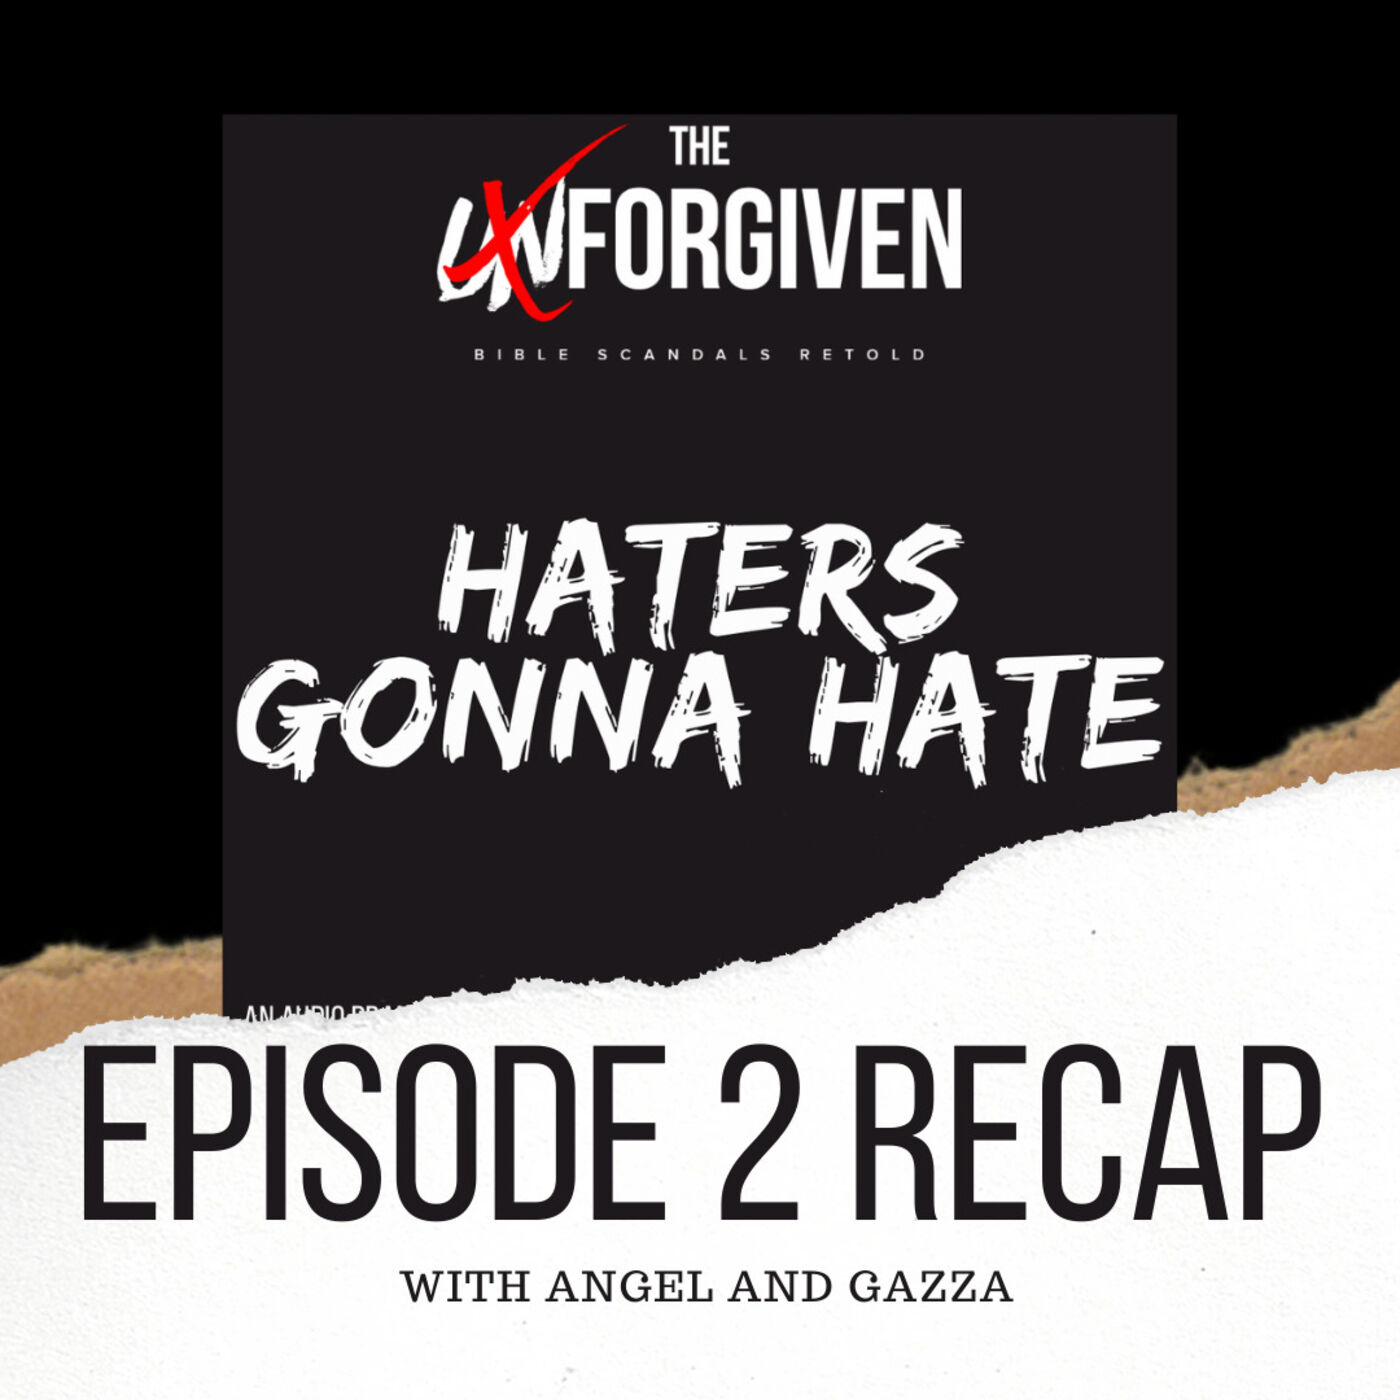 Episode 2 Recap with Angel and Gazza